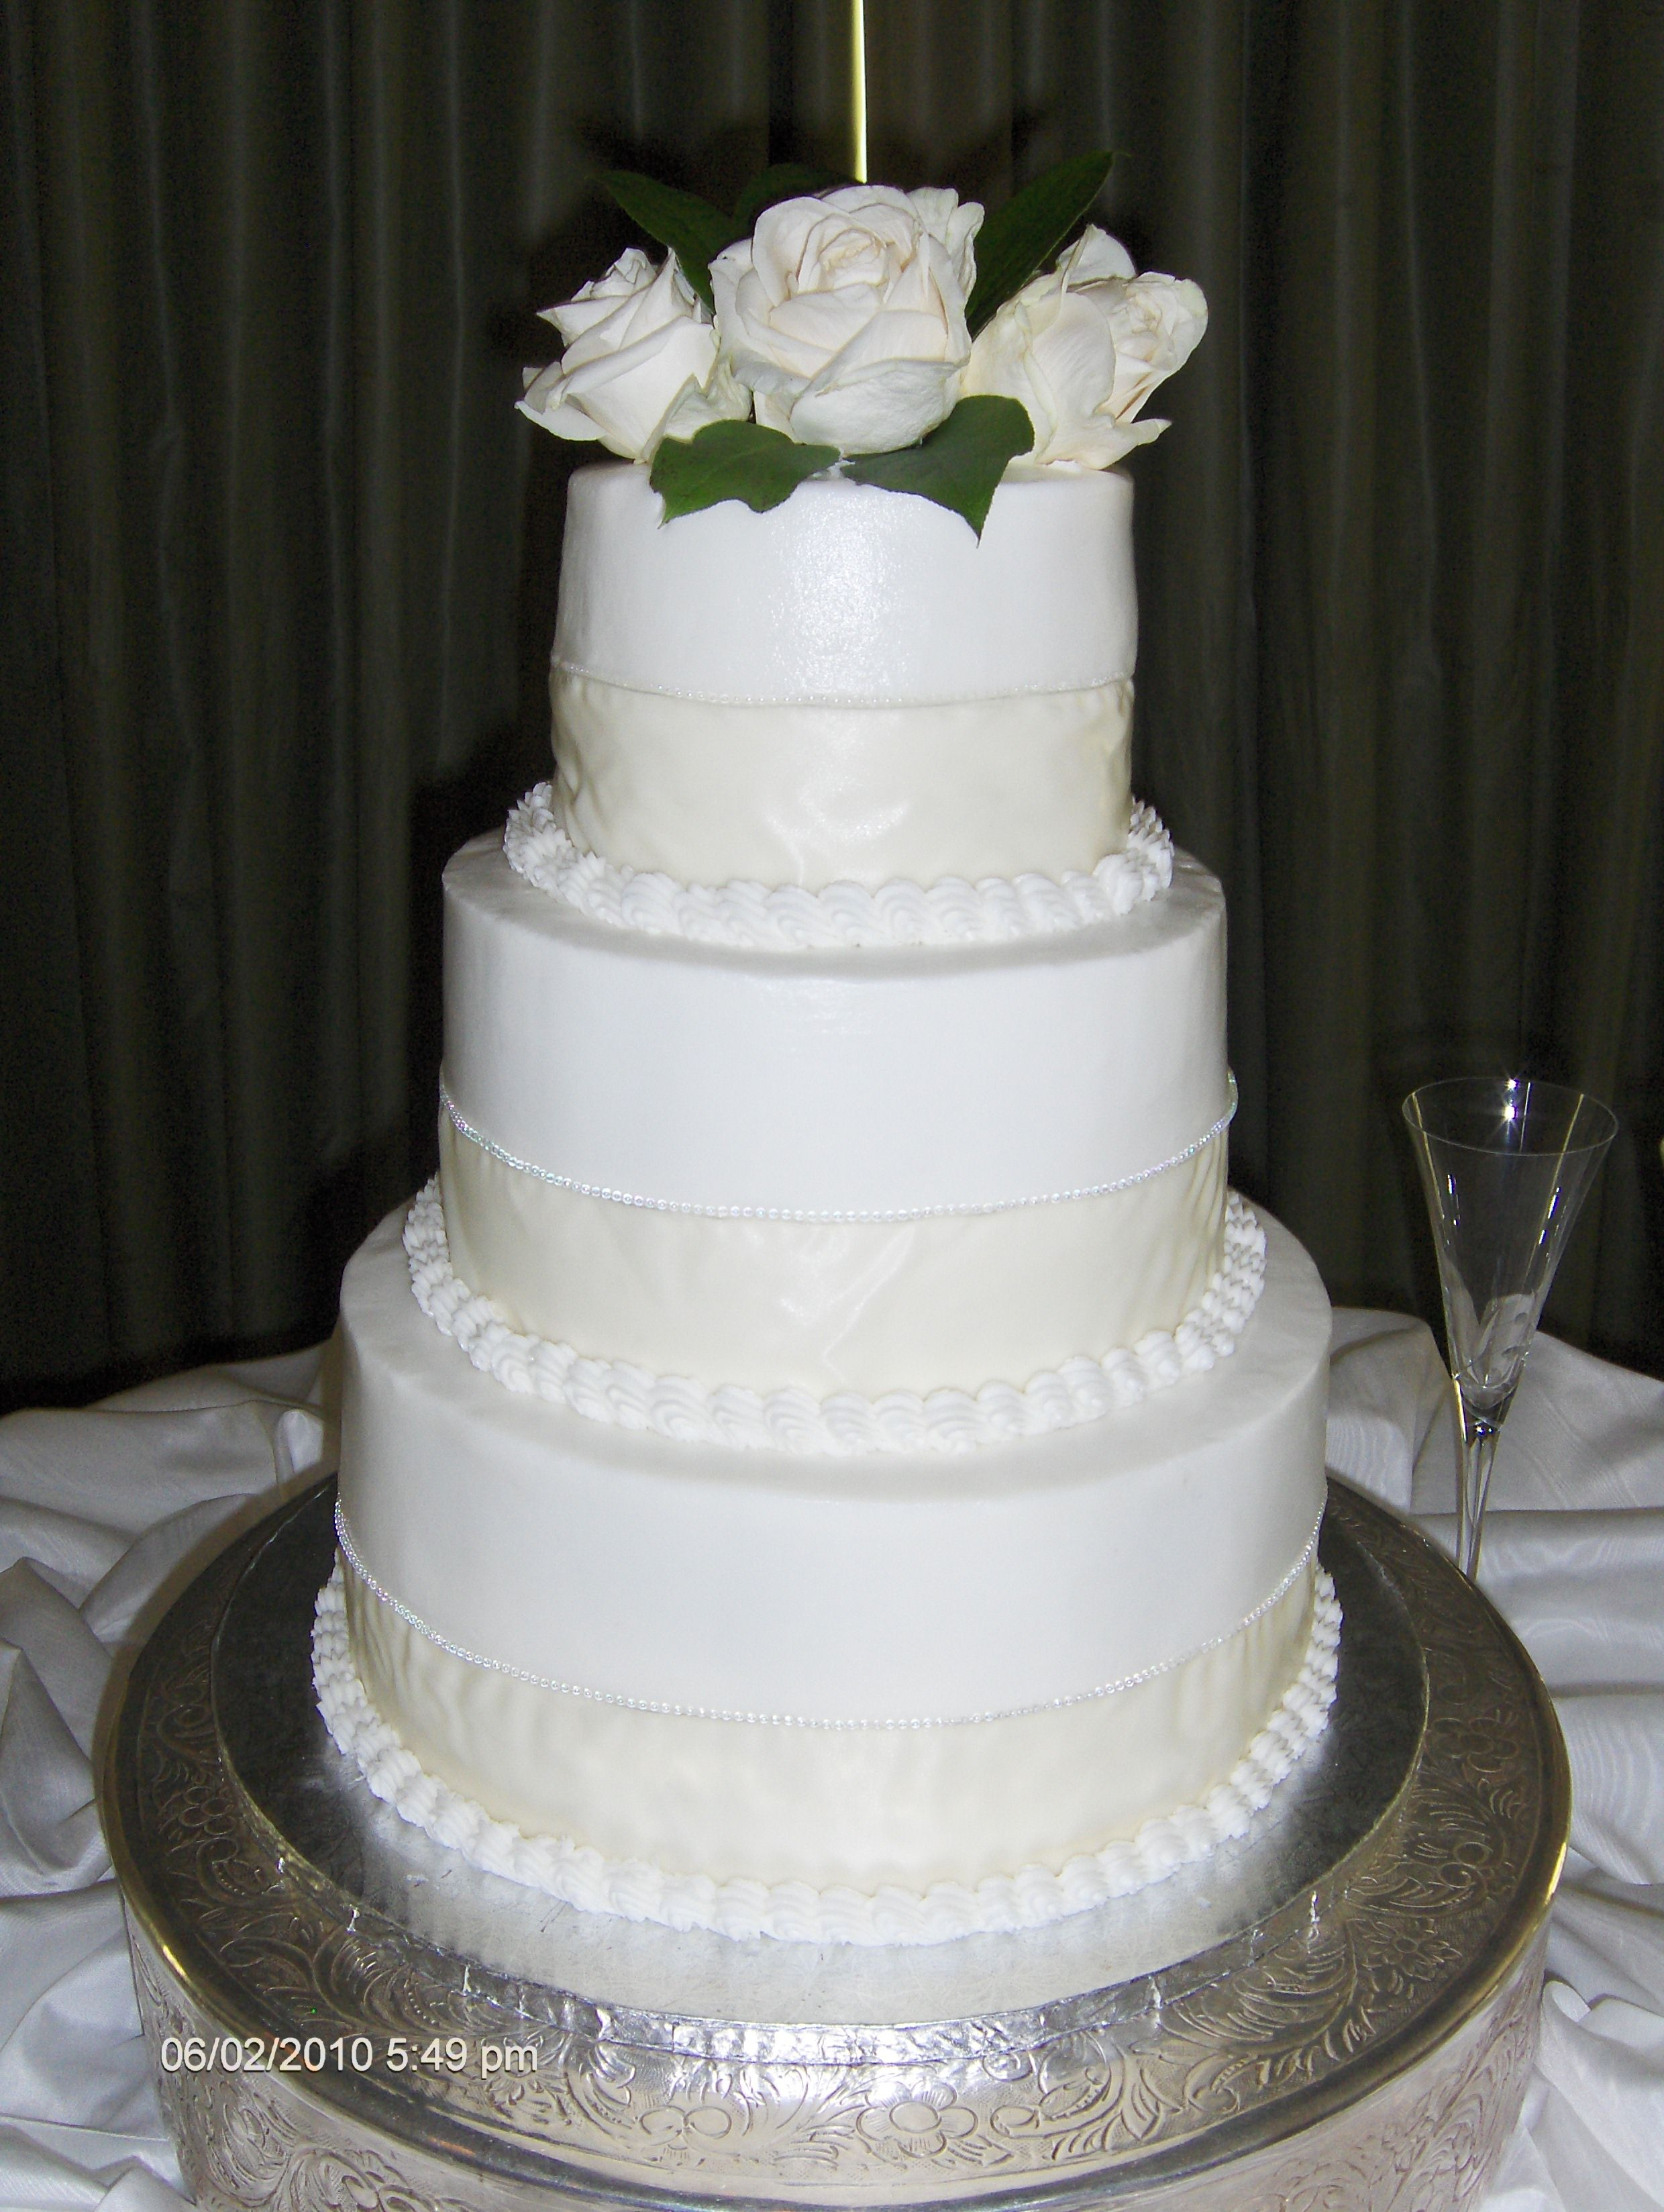 3 Tier Round Wedding Cake with Design and White Roses   Cakes and ...